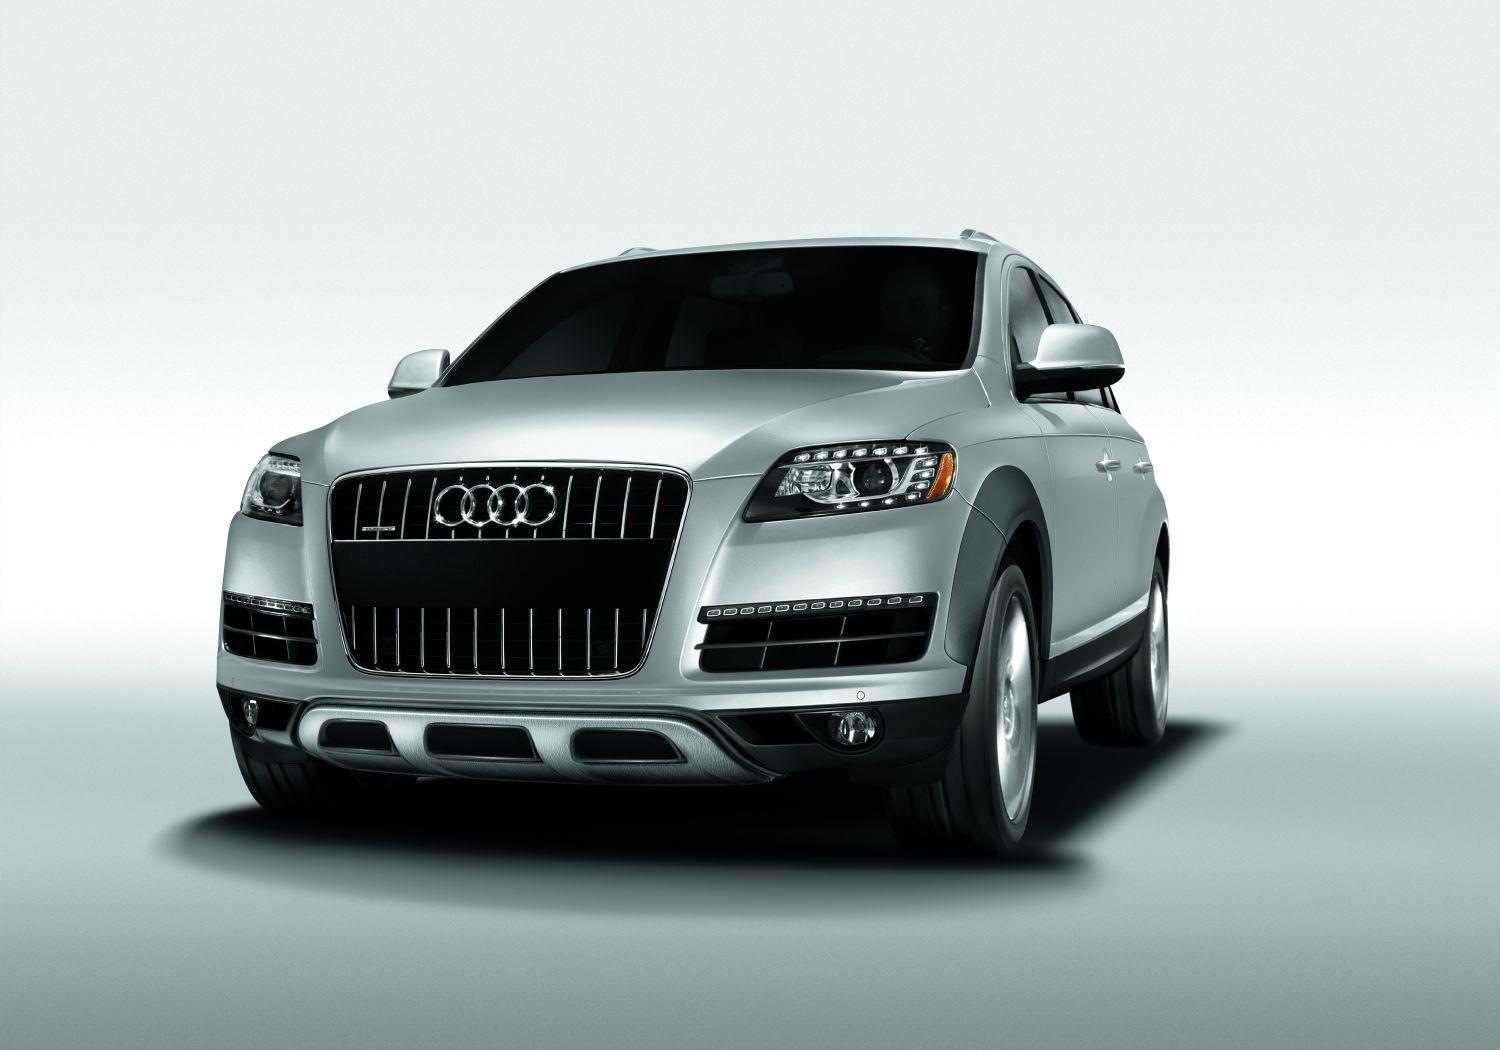 2009 Audi Q7 Off Road Package - Front Apron w/ Stainless Steel Underbody Protection (to ...